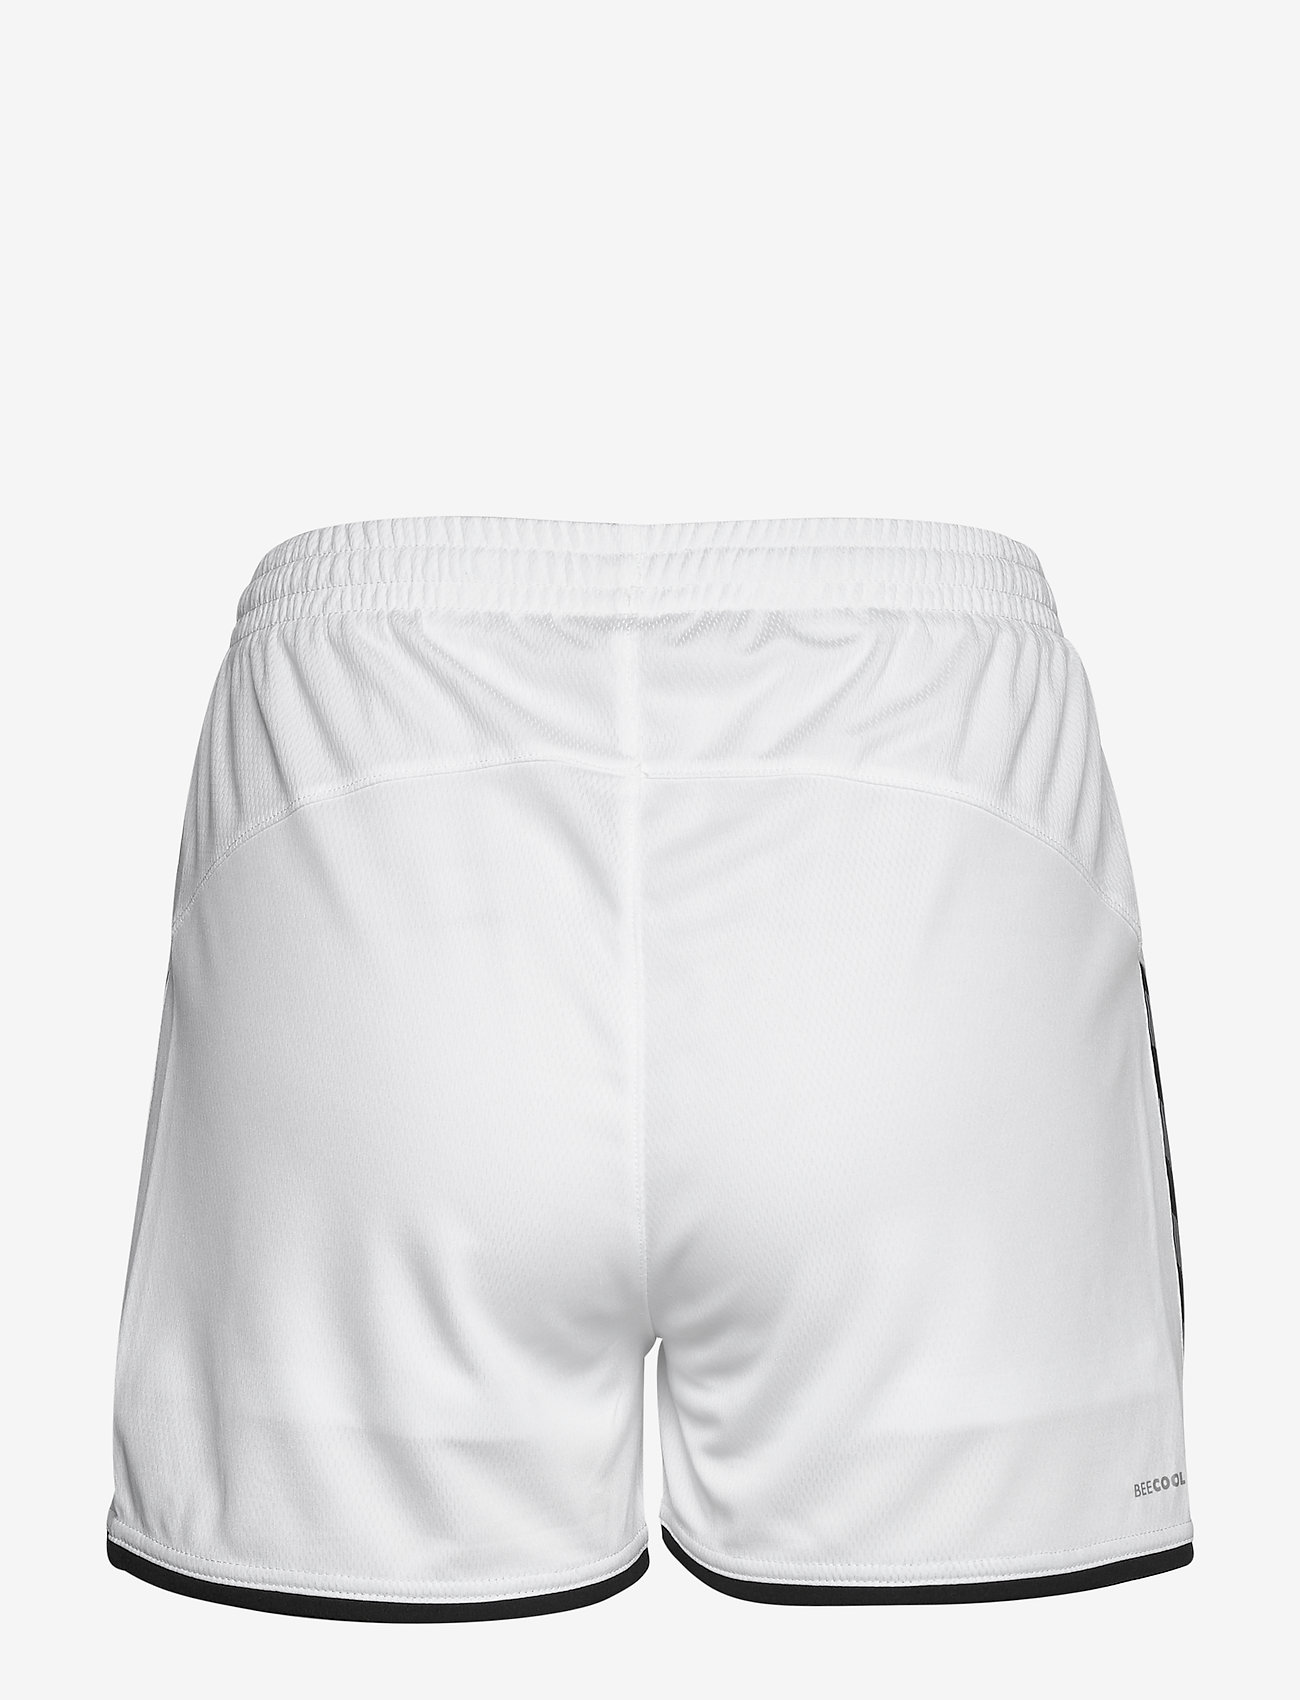 Hummel - hmlAUTHENTIC POLY SHORTS WOMAN - træningsshorts - white - 1